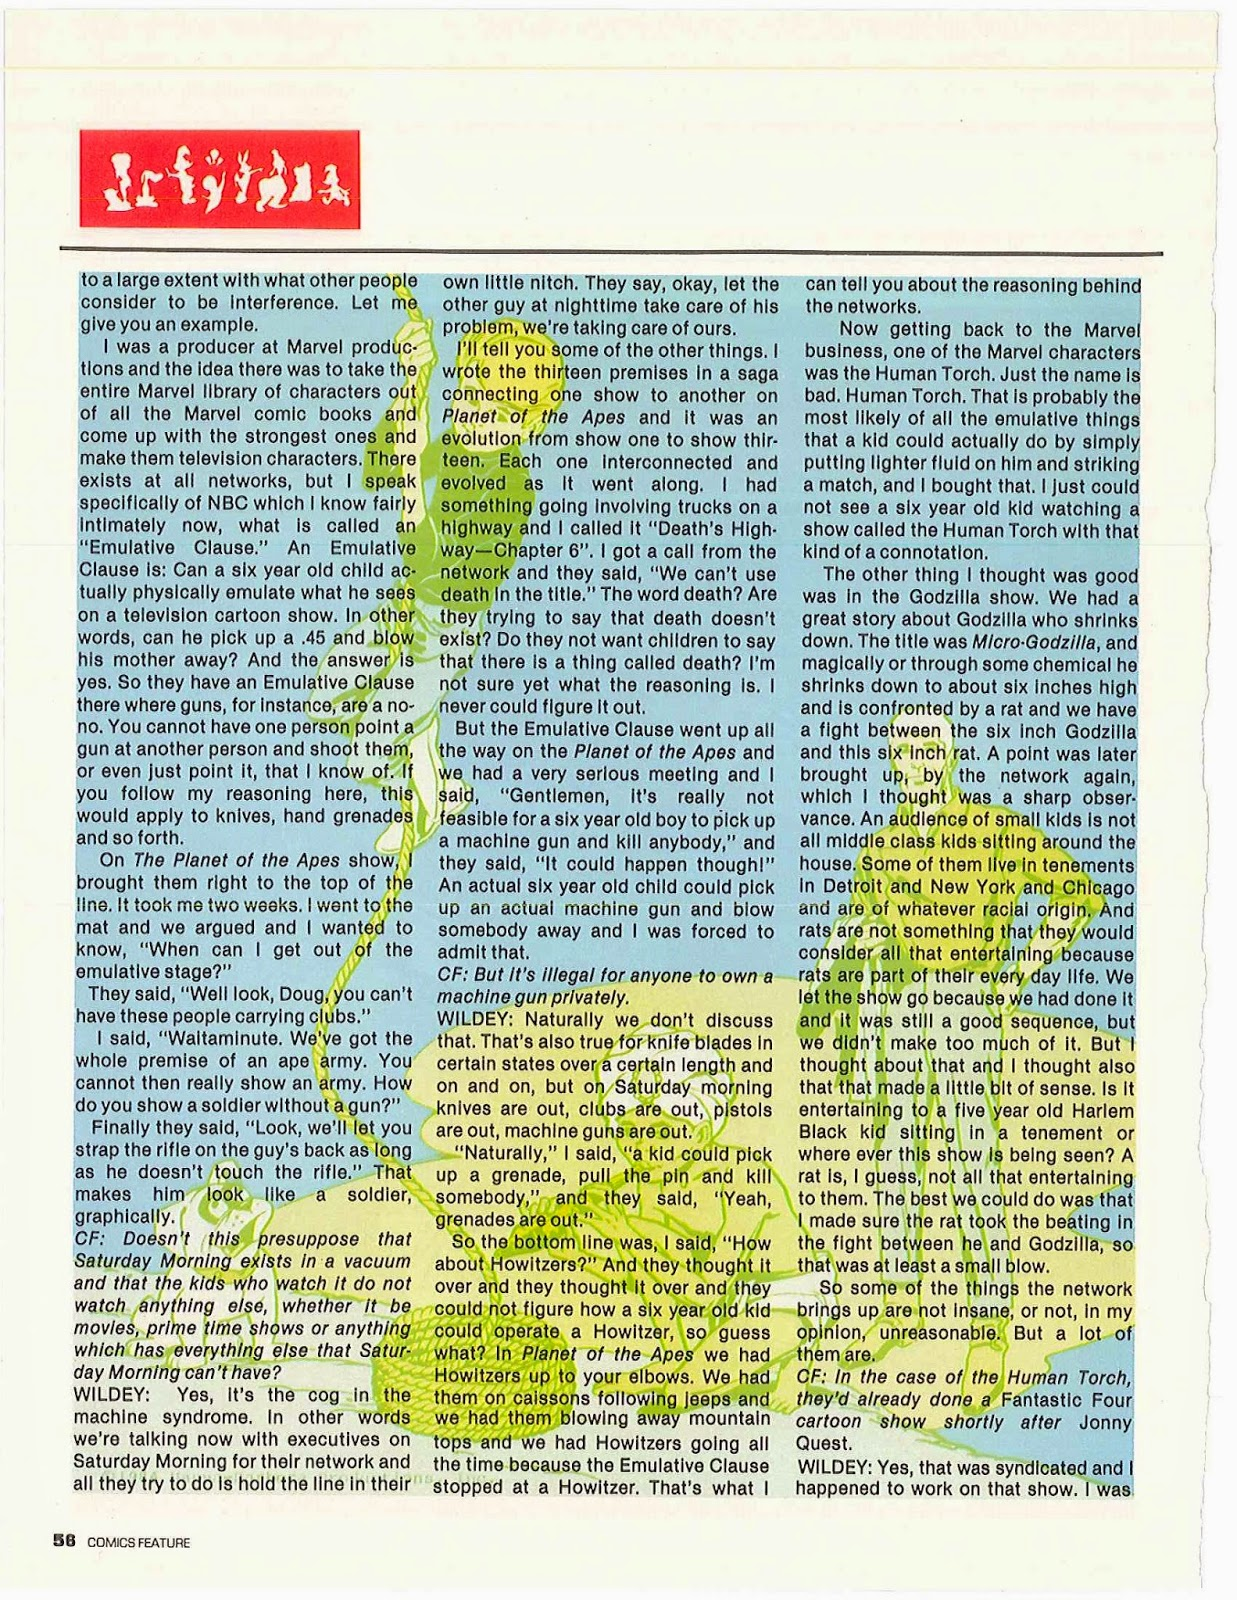 1984 feature article Have you read a great article on how 2017 looks a lot like 1984 share it with us  on facebook or twitter and we'll pass it on.